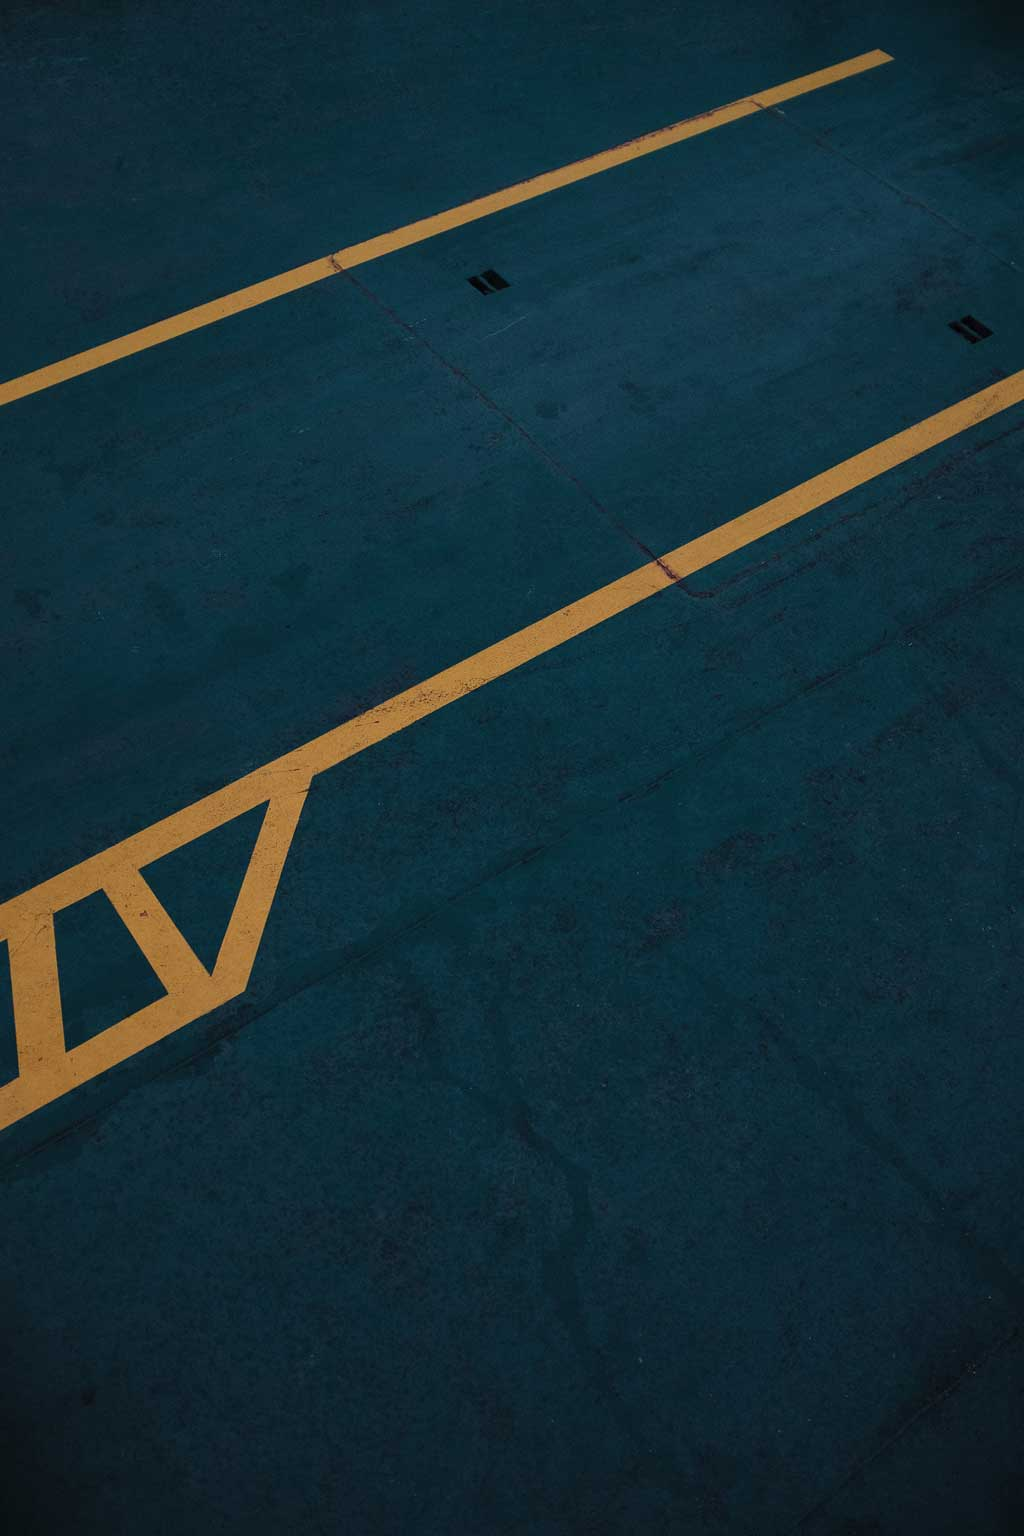 a parking lot space with yellow lines